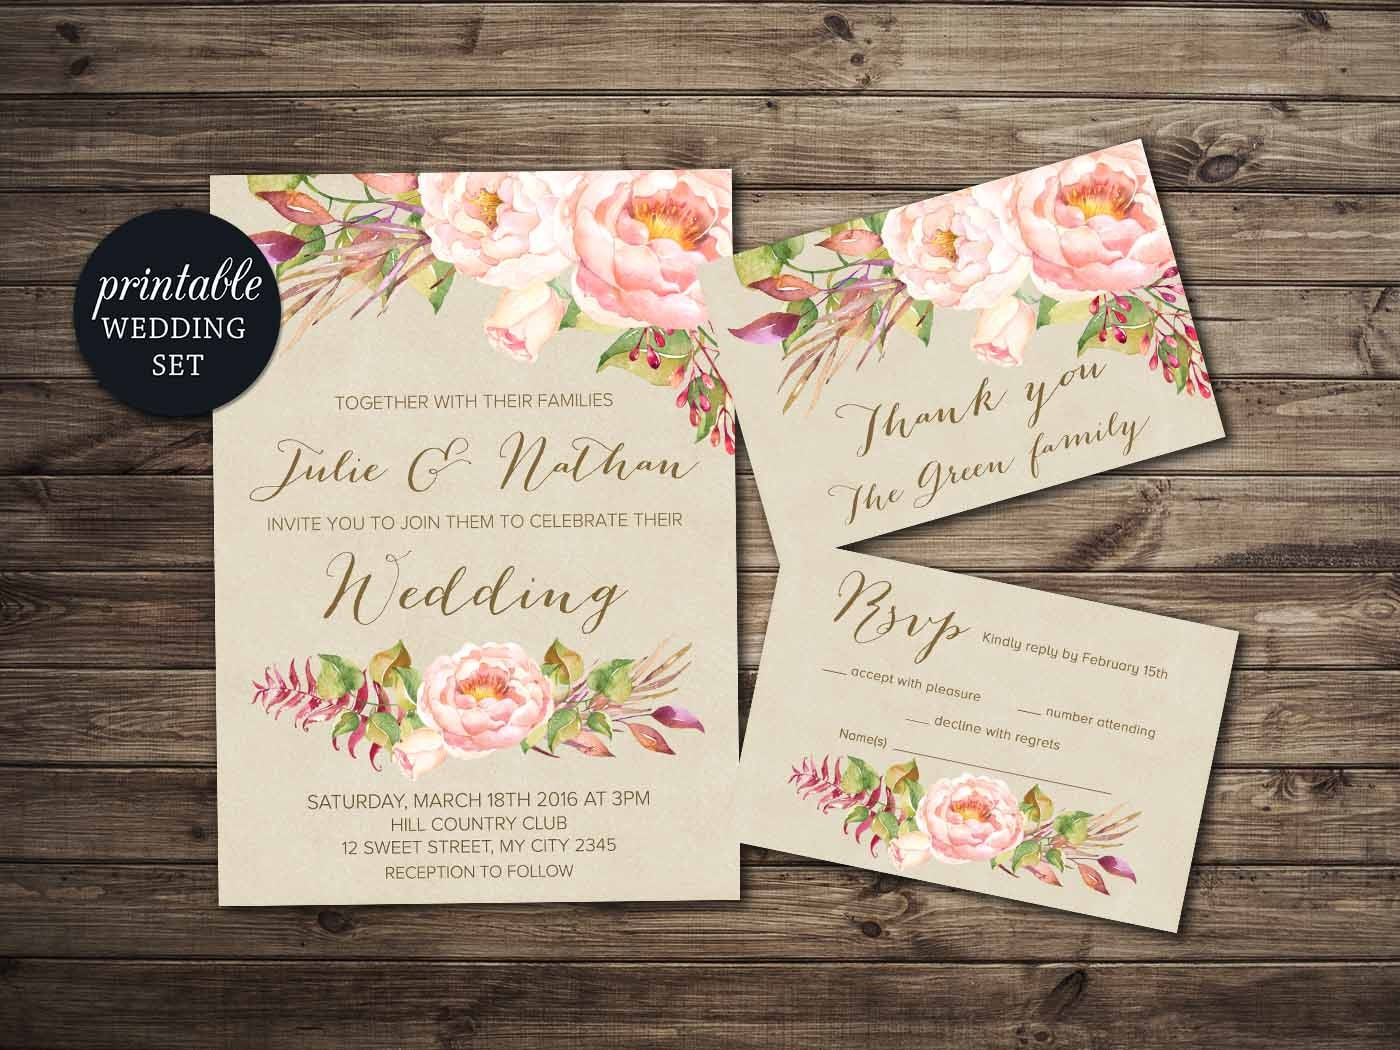 It's just a photo of Sizzling Etsy Wedding Invitations Printable